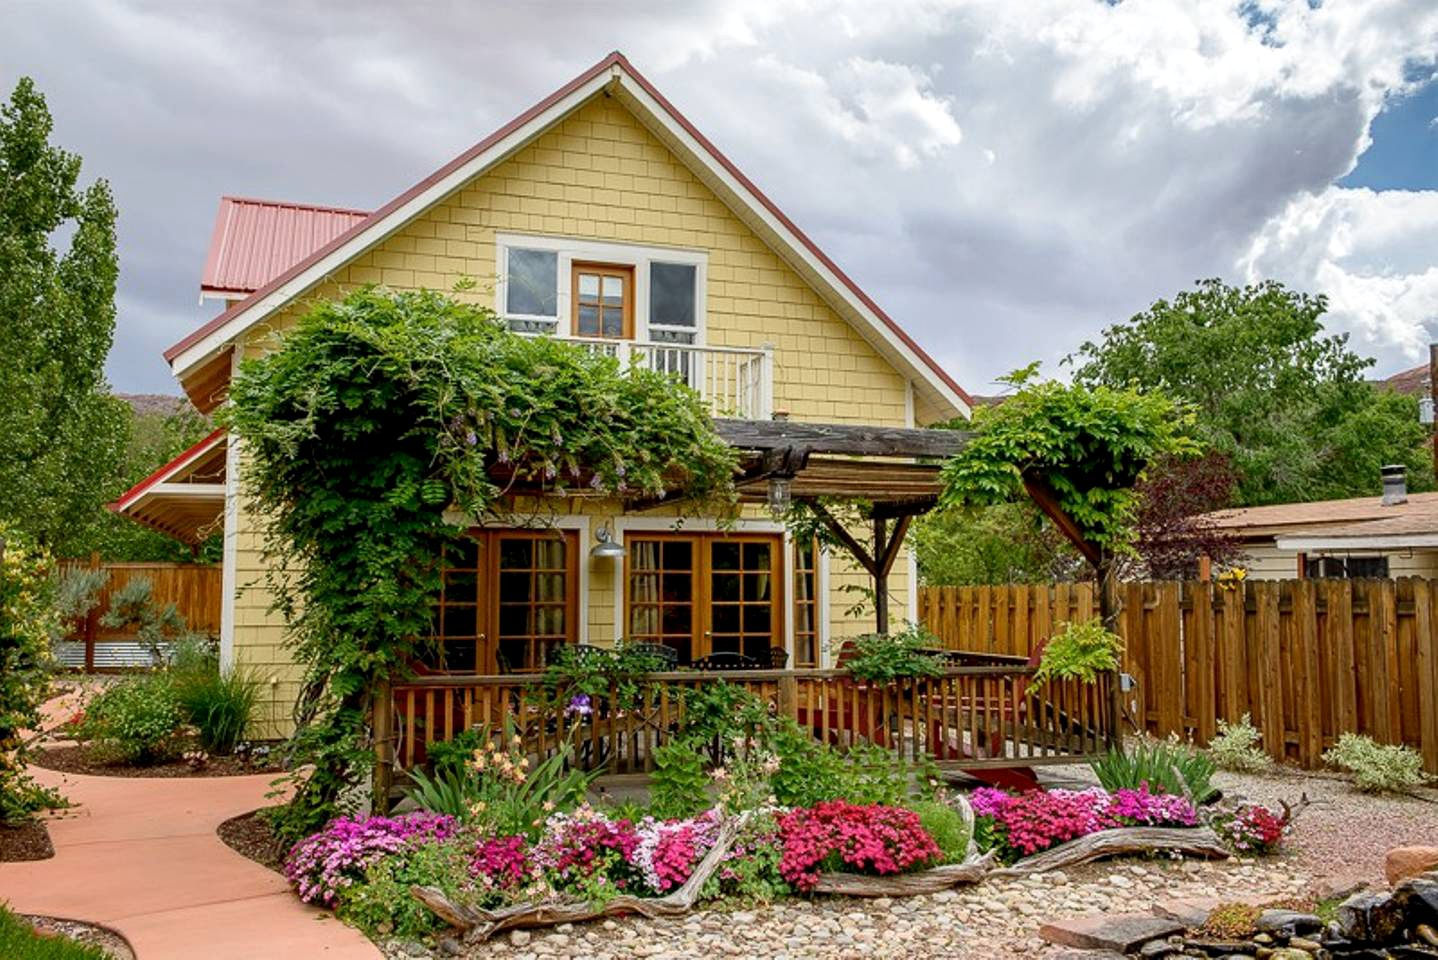 Cottages (Moab, Utah, United States)